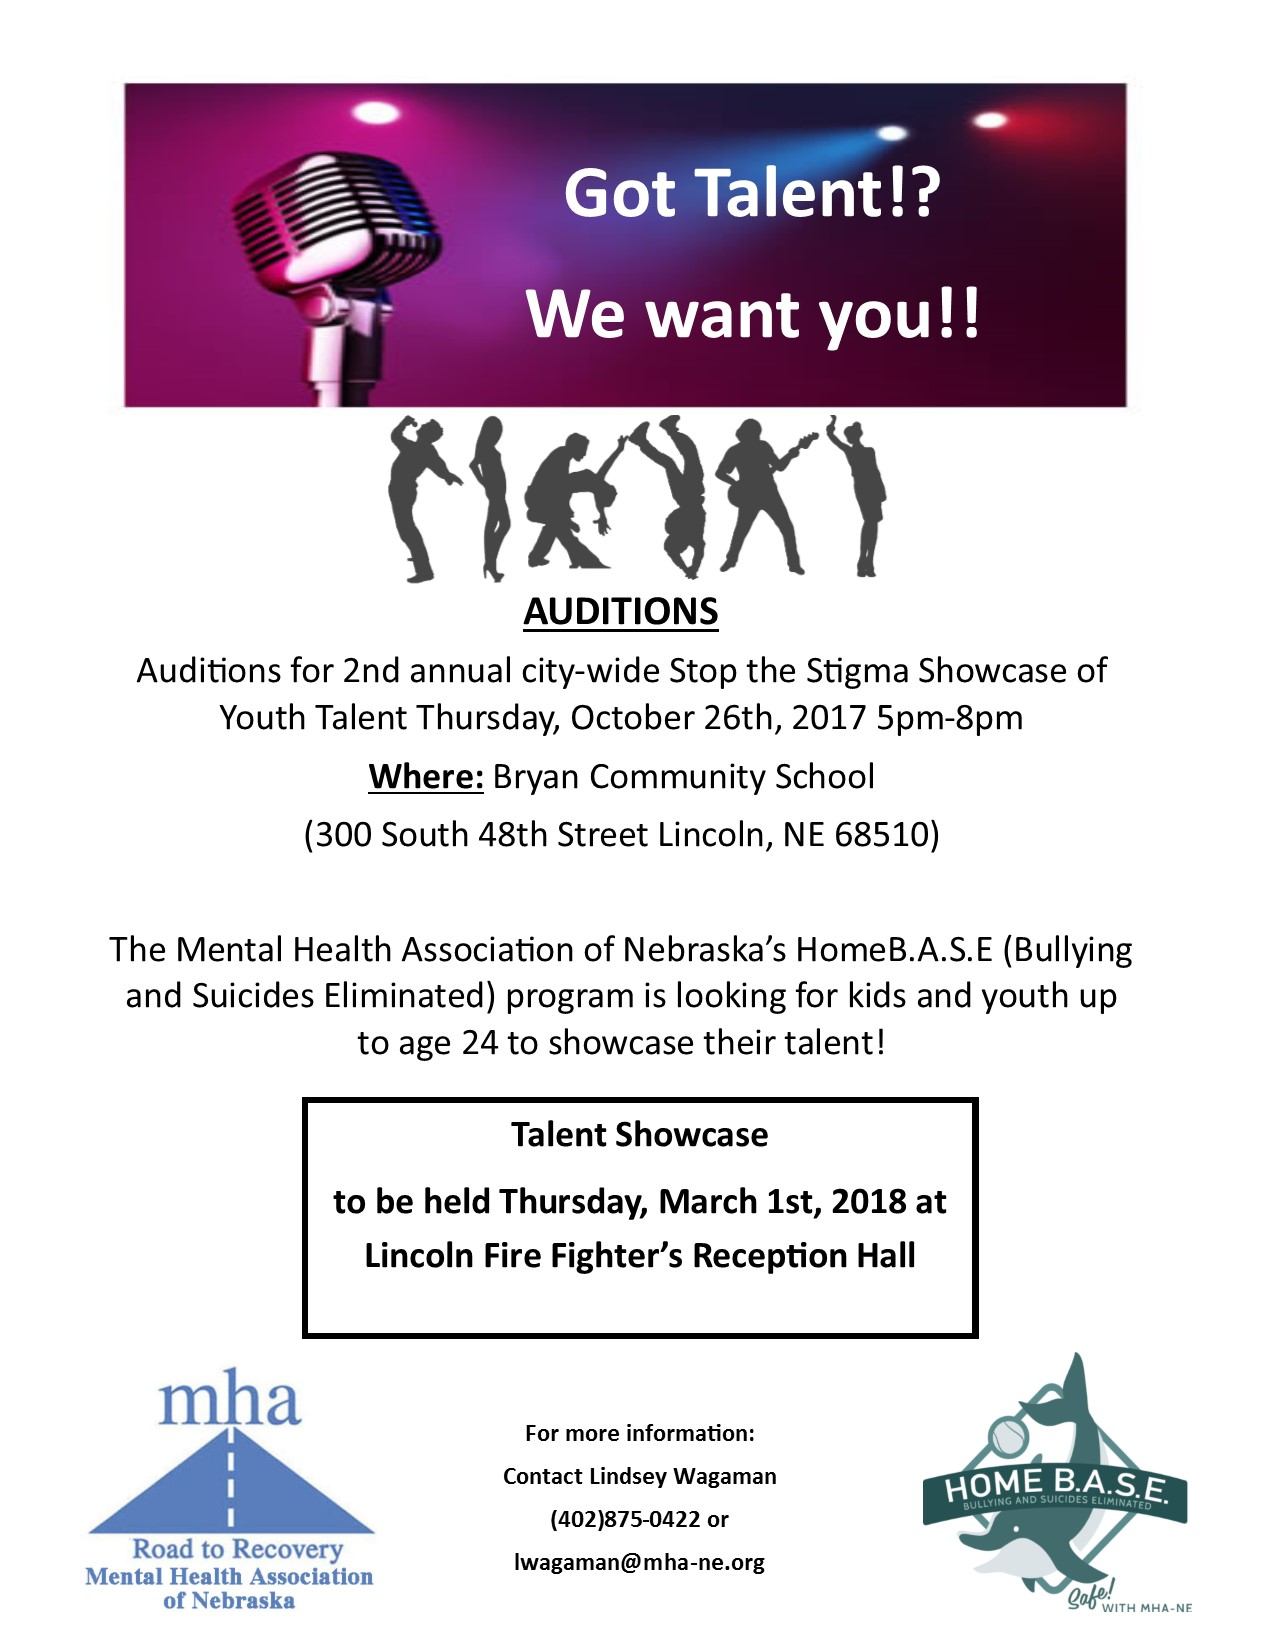 2nd AUDITIONS for Youth Talent Showcase: Oct. 26th